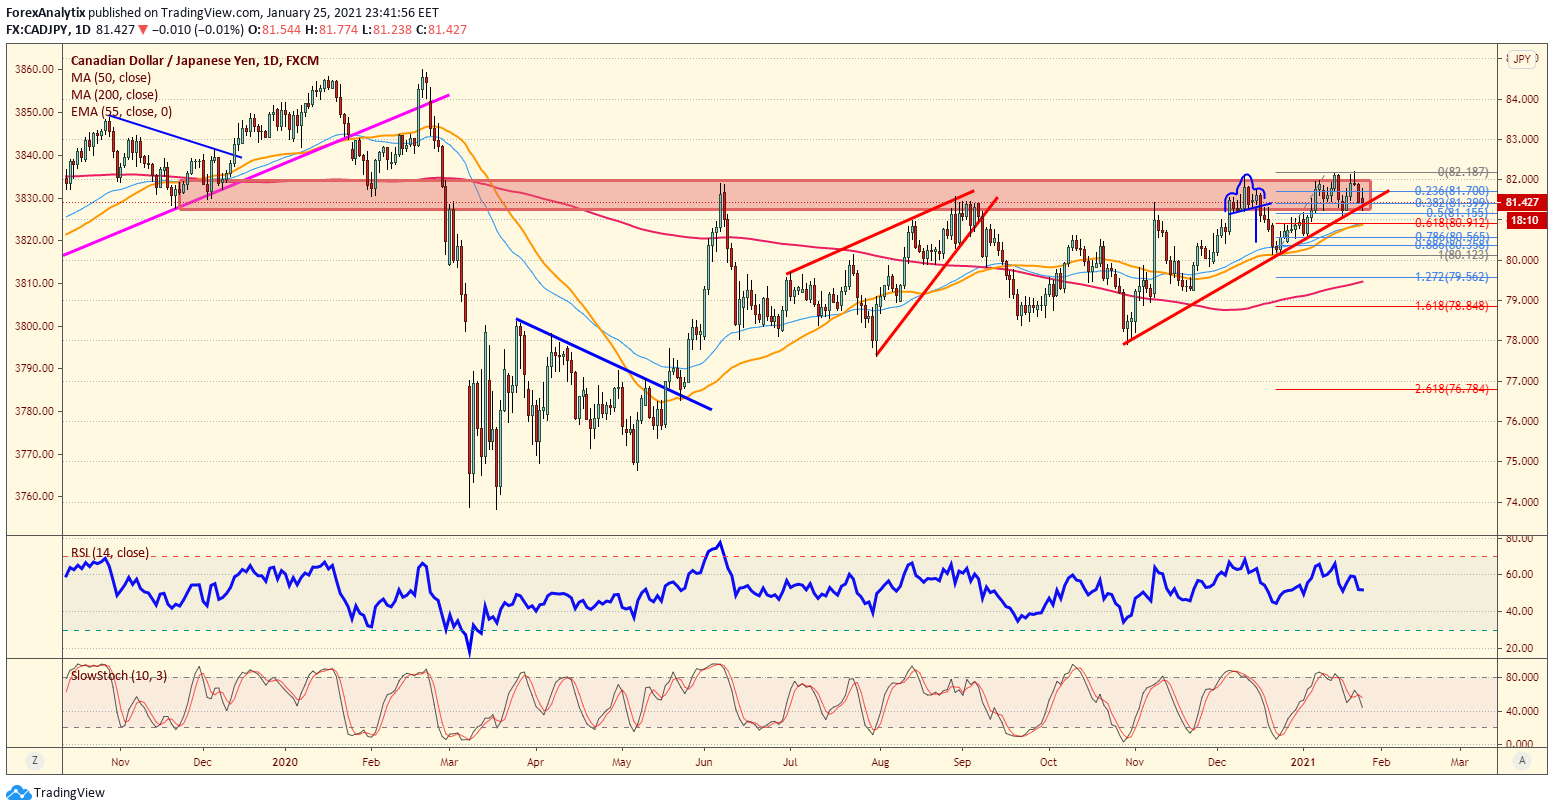 CAD/JPY Daily Chart.